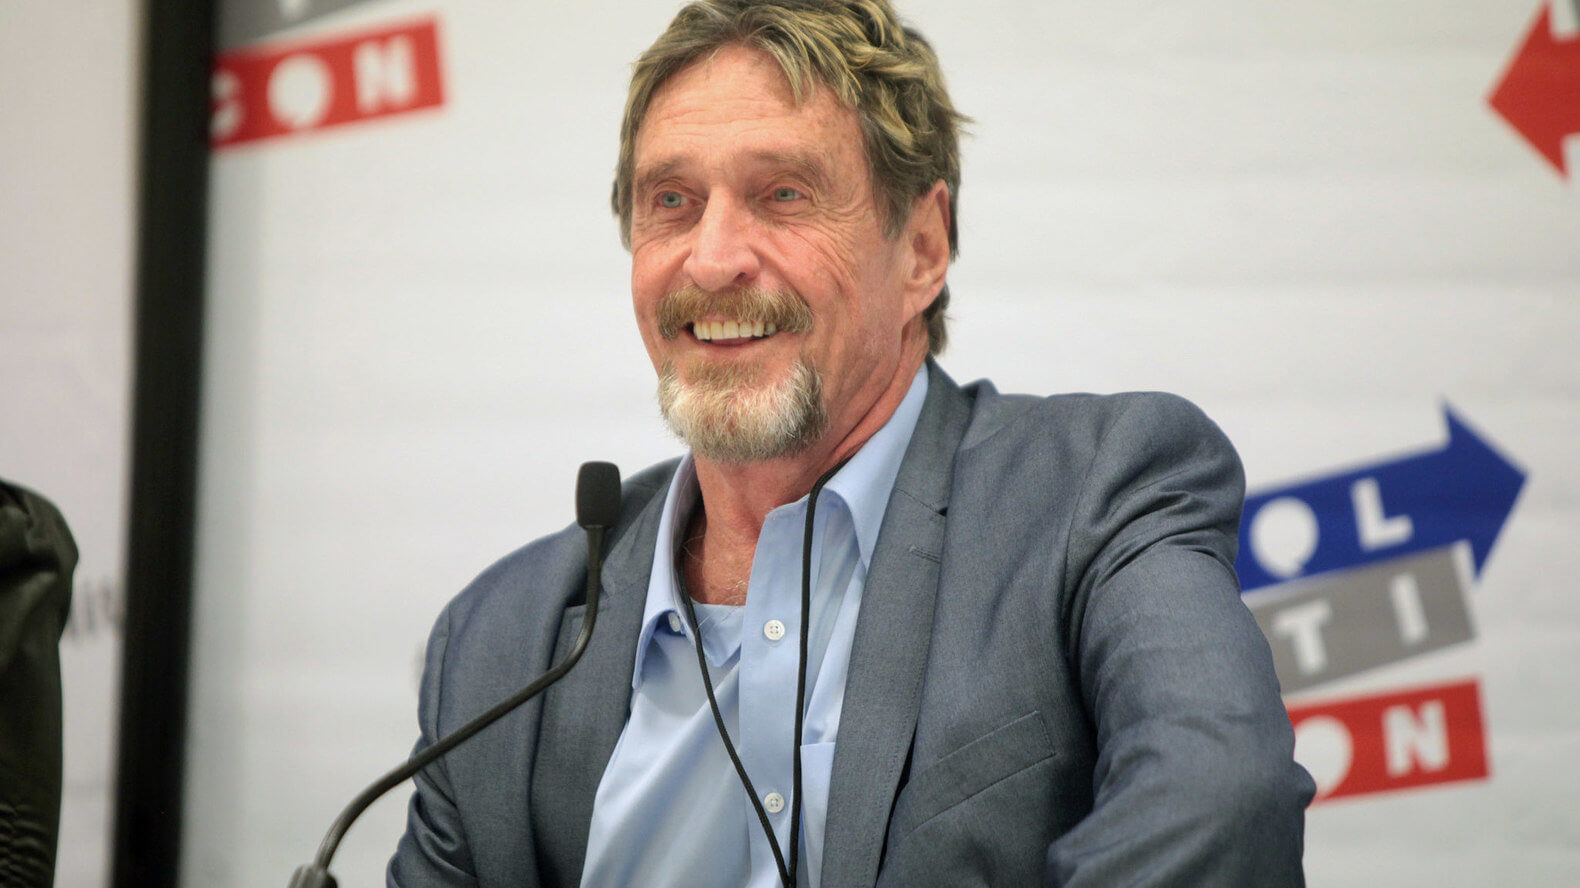 John Mcafee's Cryptocurrency Exchange Launch Faces Hiccup via DOS Attack